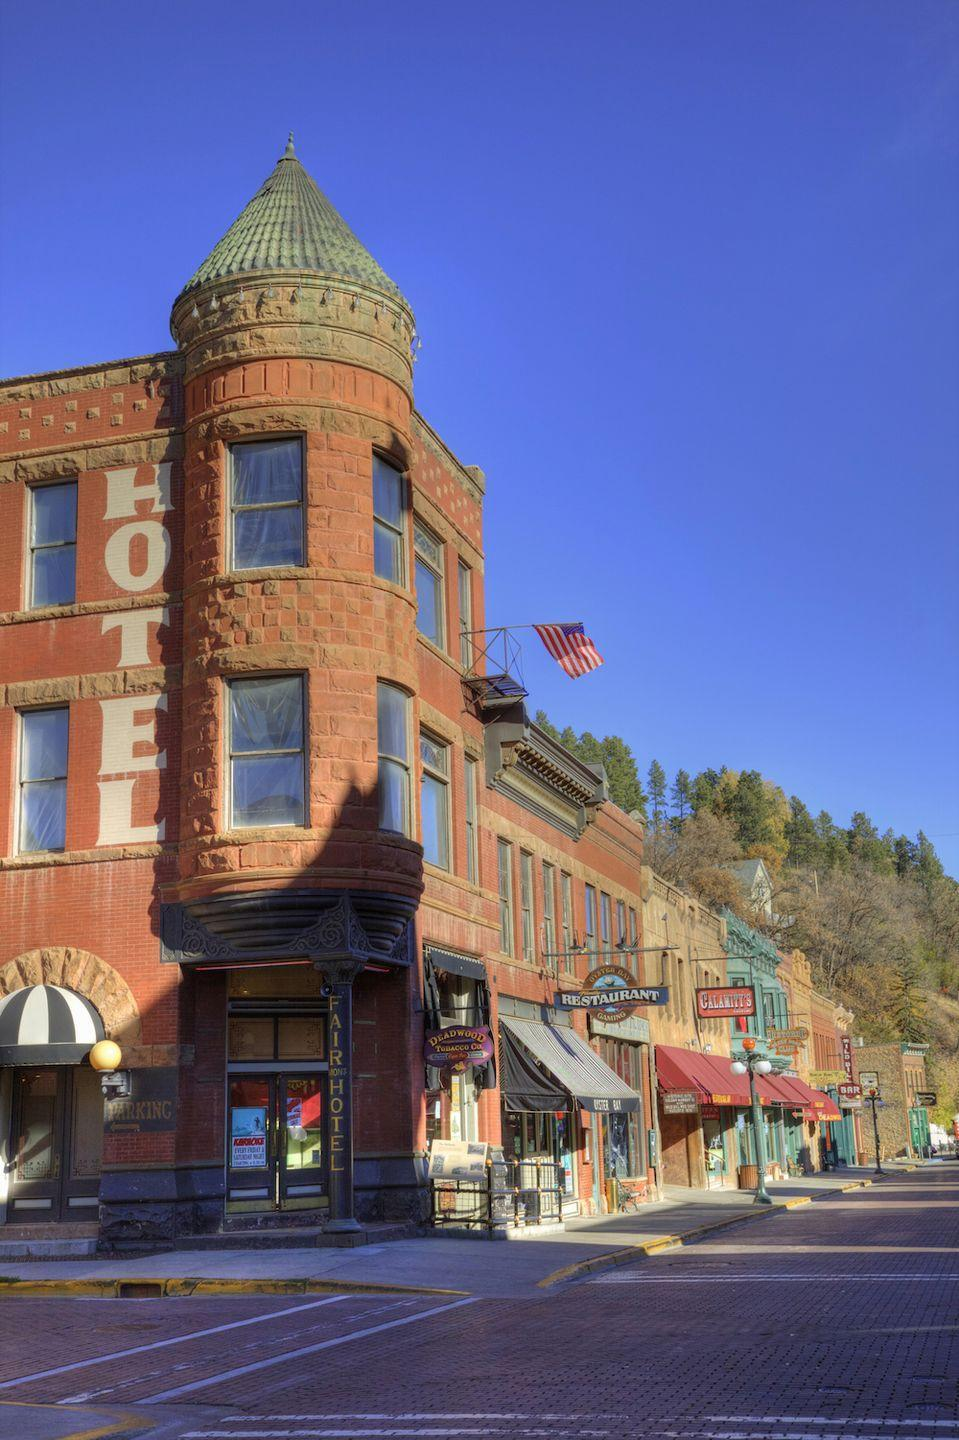 """<p>Deadwood may be a popular destination for casino gambling, but it offers much, much more. The town's surrounded by the famed <a href=""""https://www.deadwood.com/thingstodo/recreation/"""" rel=""""nofollow noopener"""" target=""""_blank"""" data-ylk=""""slk:Black Hills area"""" class=""""link rapid-noclick-resp"""">Black Hills area</a>, where you can find secluded forests, snowmobile trails and ski resorts. <a href=""""https://www.deadwood.com/events/deadweird/"""" rel=""""nofollow noopener"""" target=""""_blank"""" data-ylk=""""slk:Deadweird"""" class=""""link rapid-noclick-resp"""">Deadweird</a>, a celebration of all things odd that takes place around Halloween, is a favorite new tradition.</p>"""